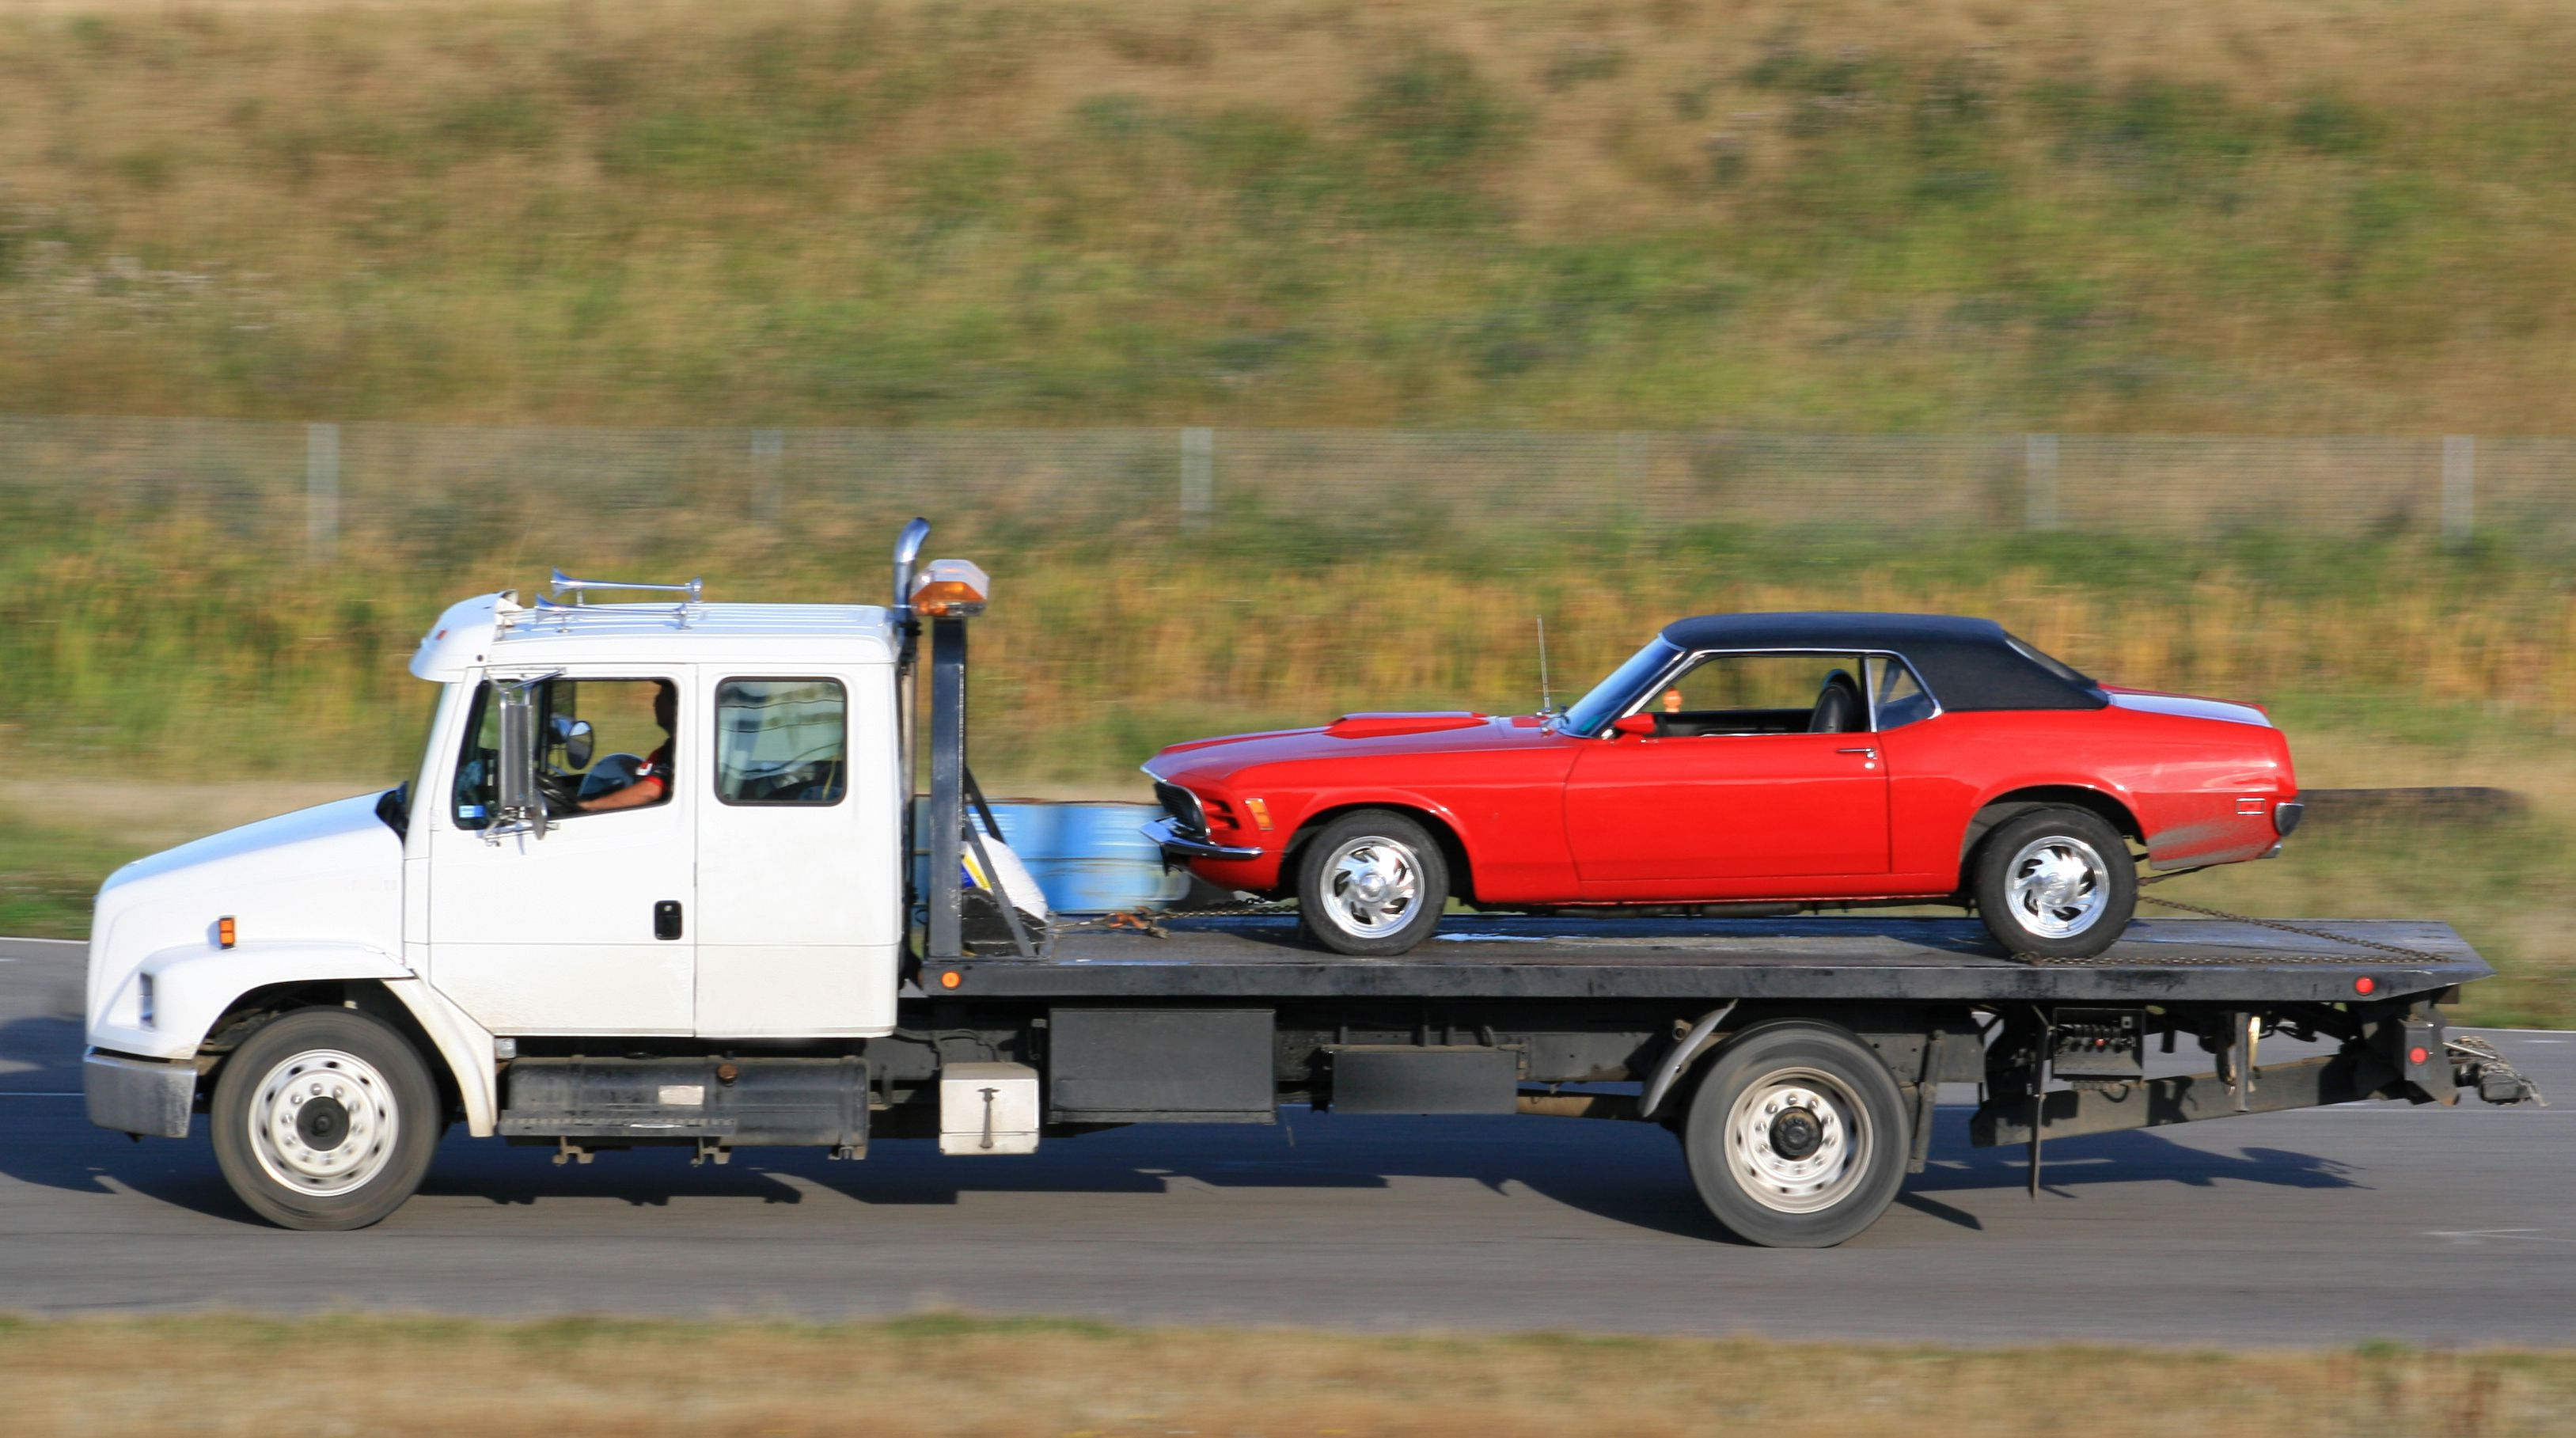 Towing Car What Is Voluntary Repossession?